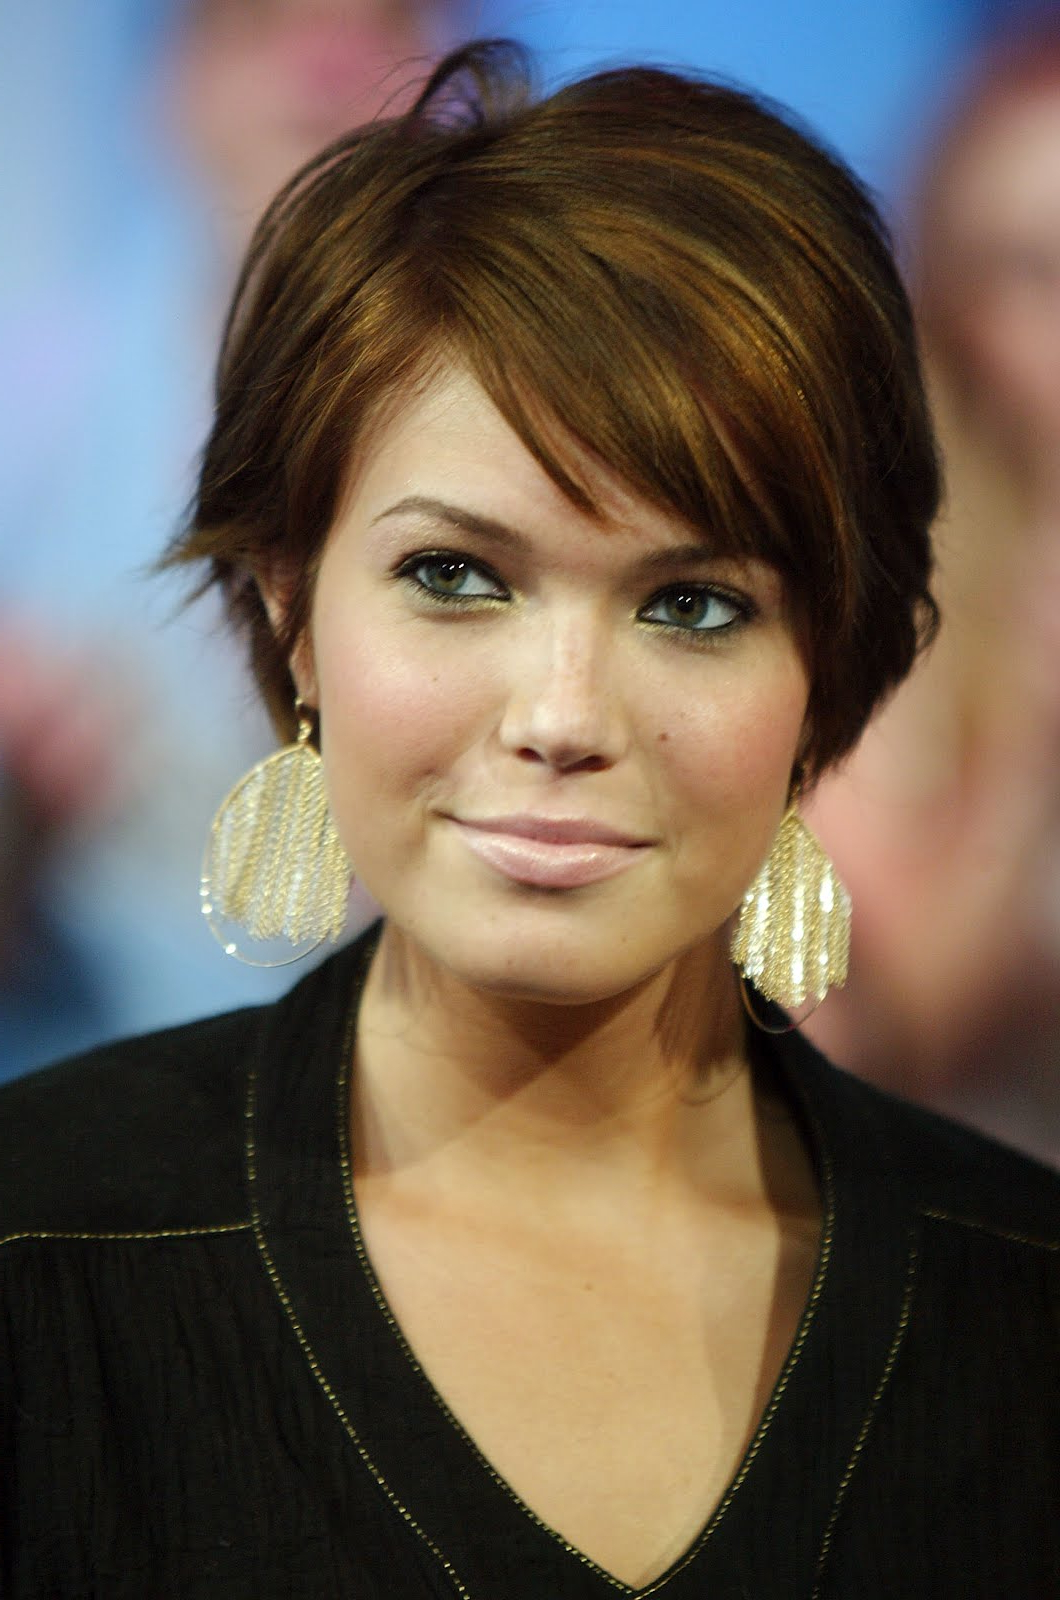 30 Gorgeous Short Haircuts For Round Faces Regarding Edgy Short Haircuts For Round Faces (View 10 of 25)